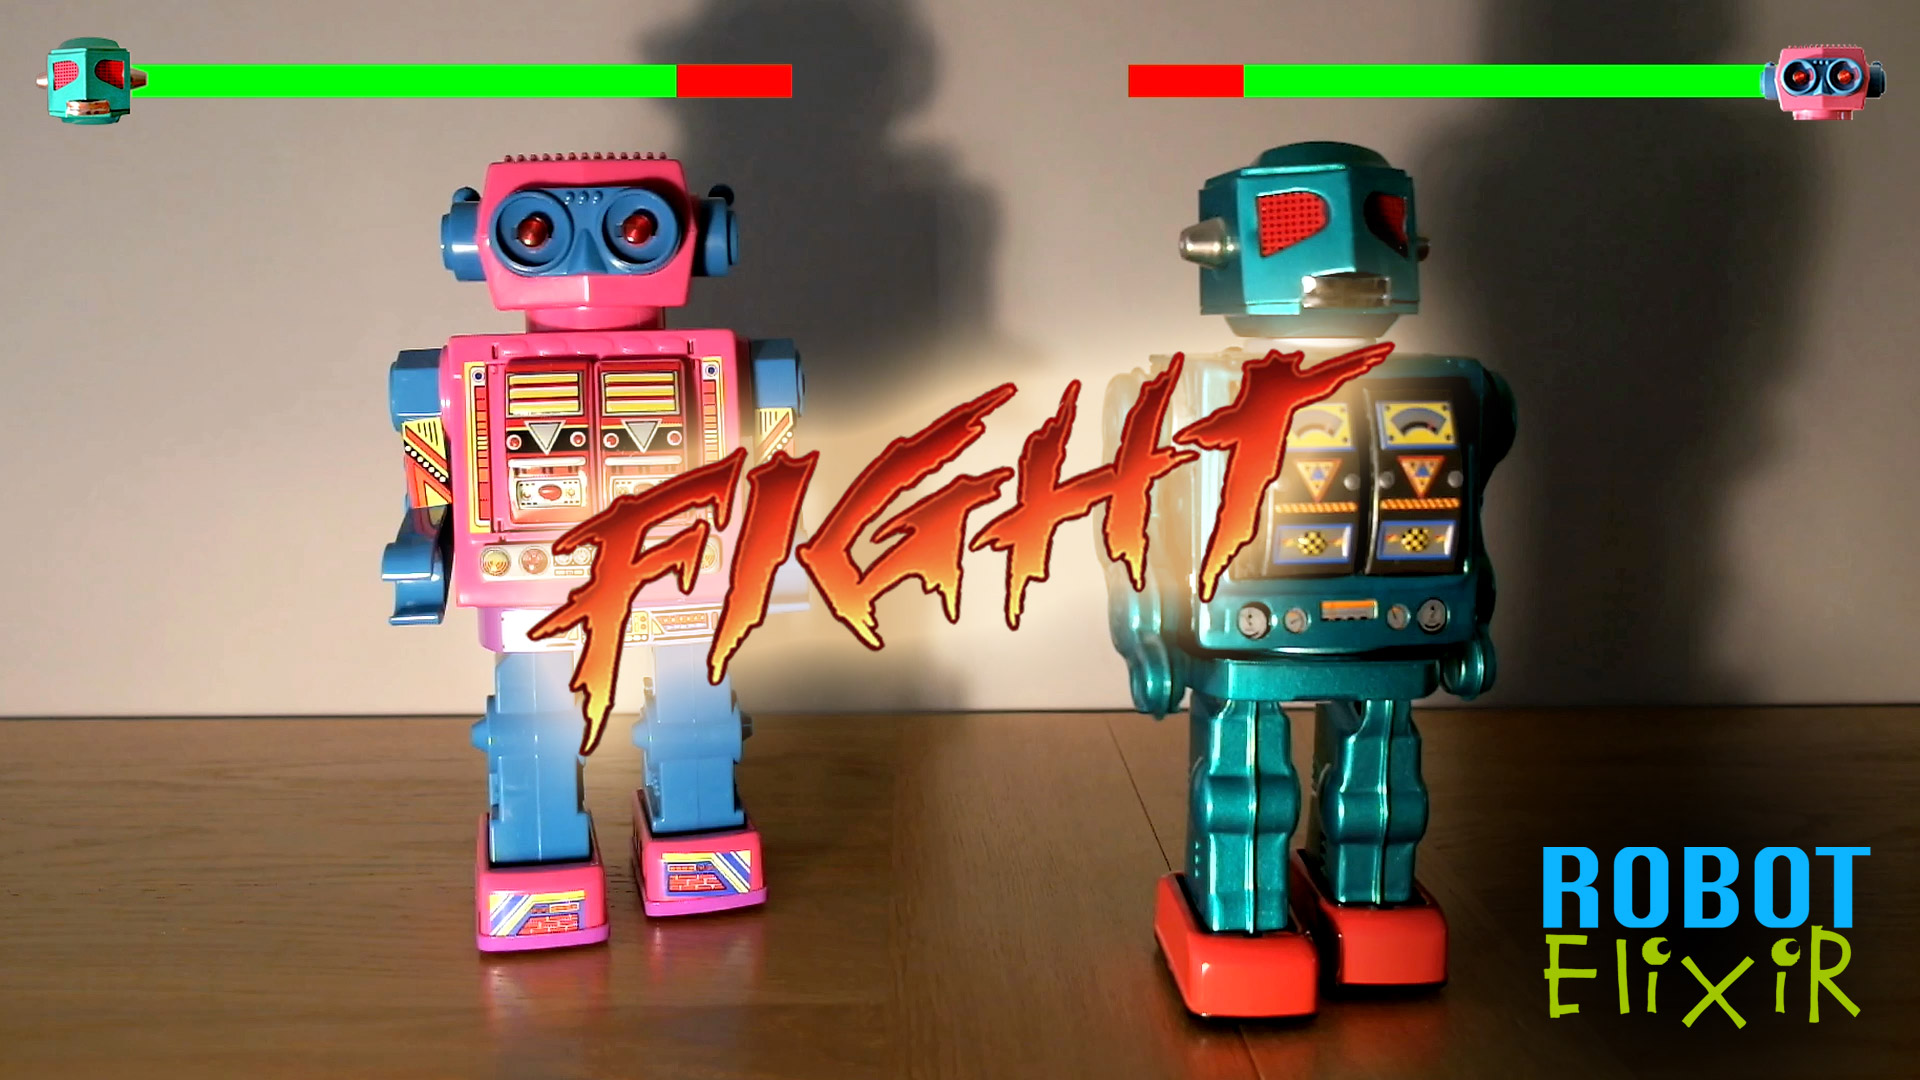 Awesome Fighting Robots with Epic Head-to-head Battle